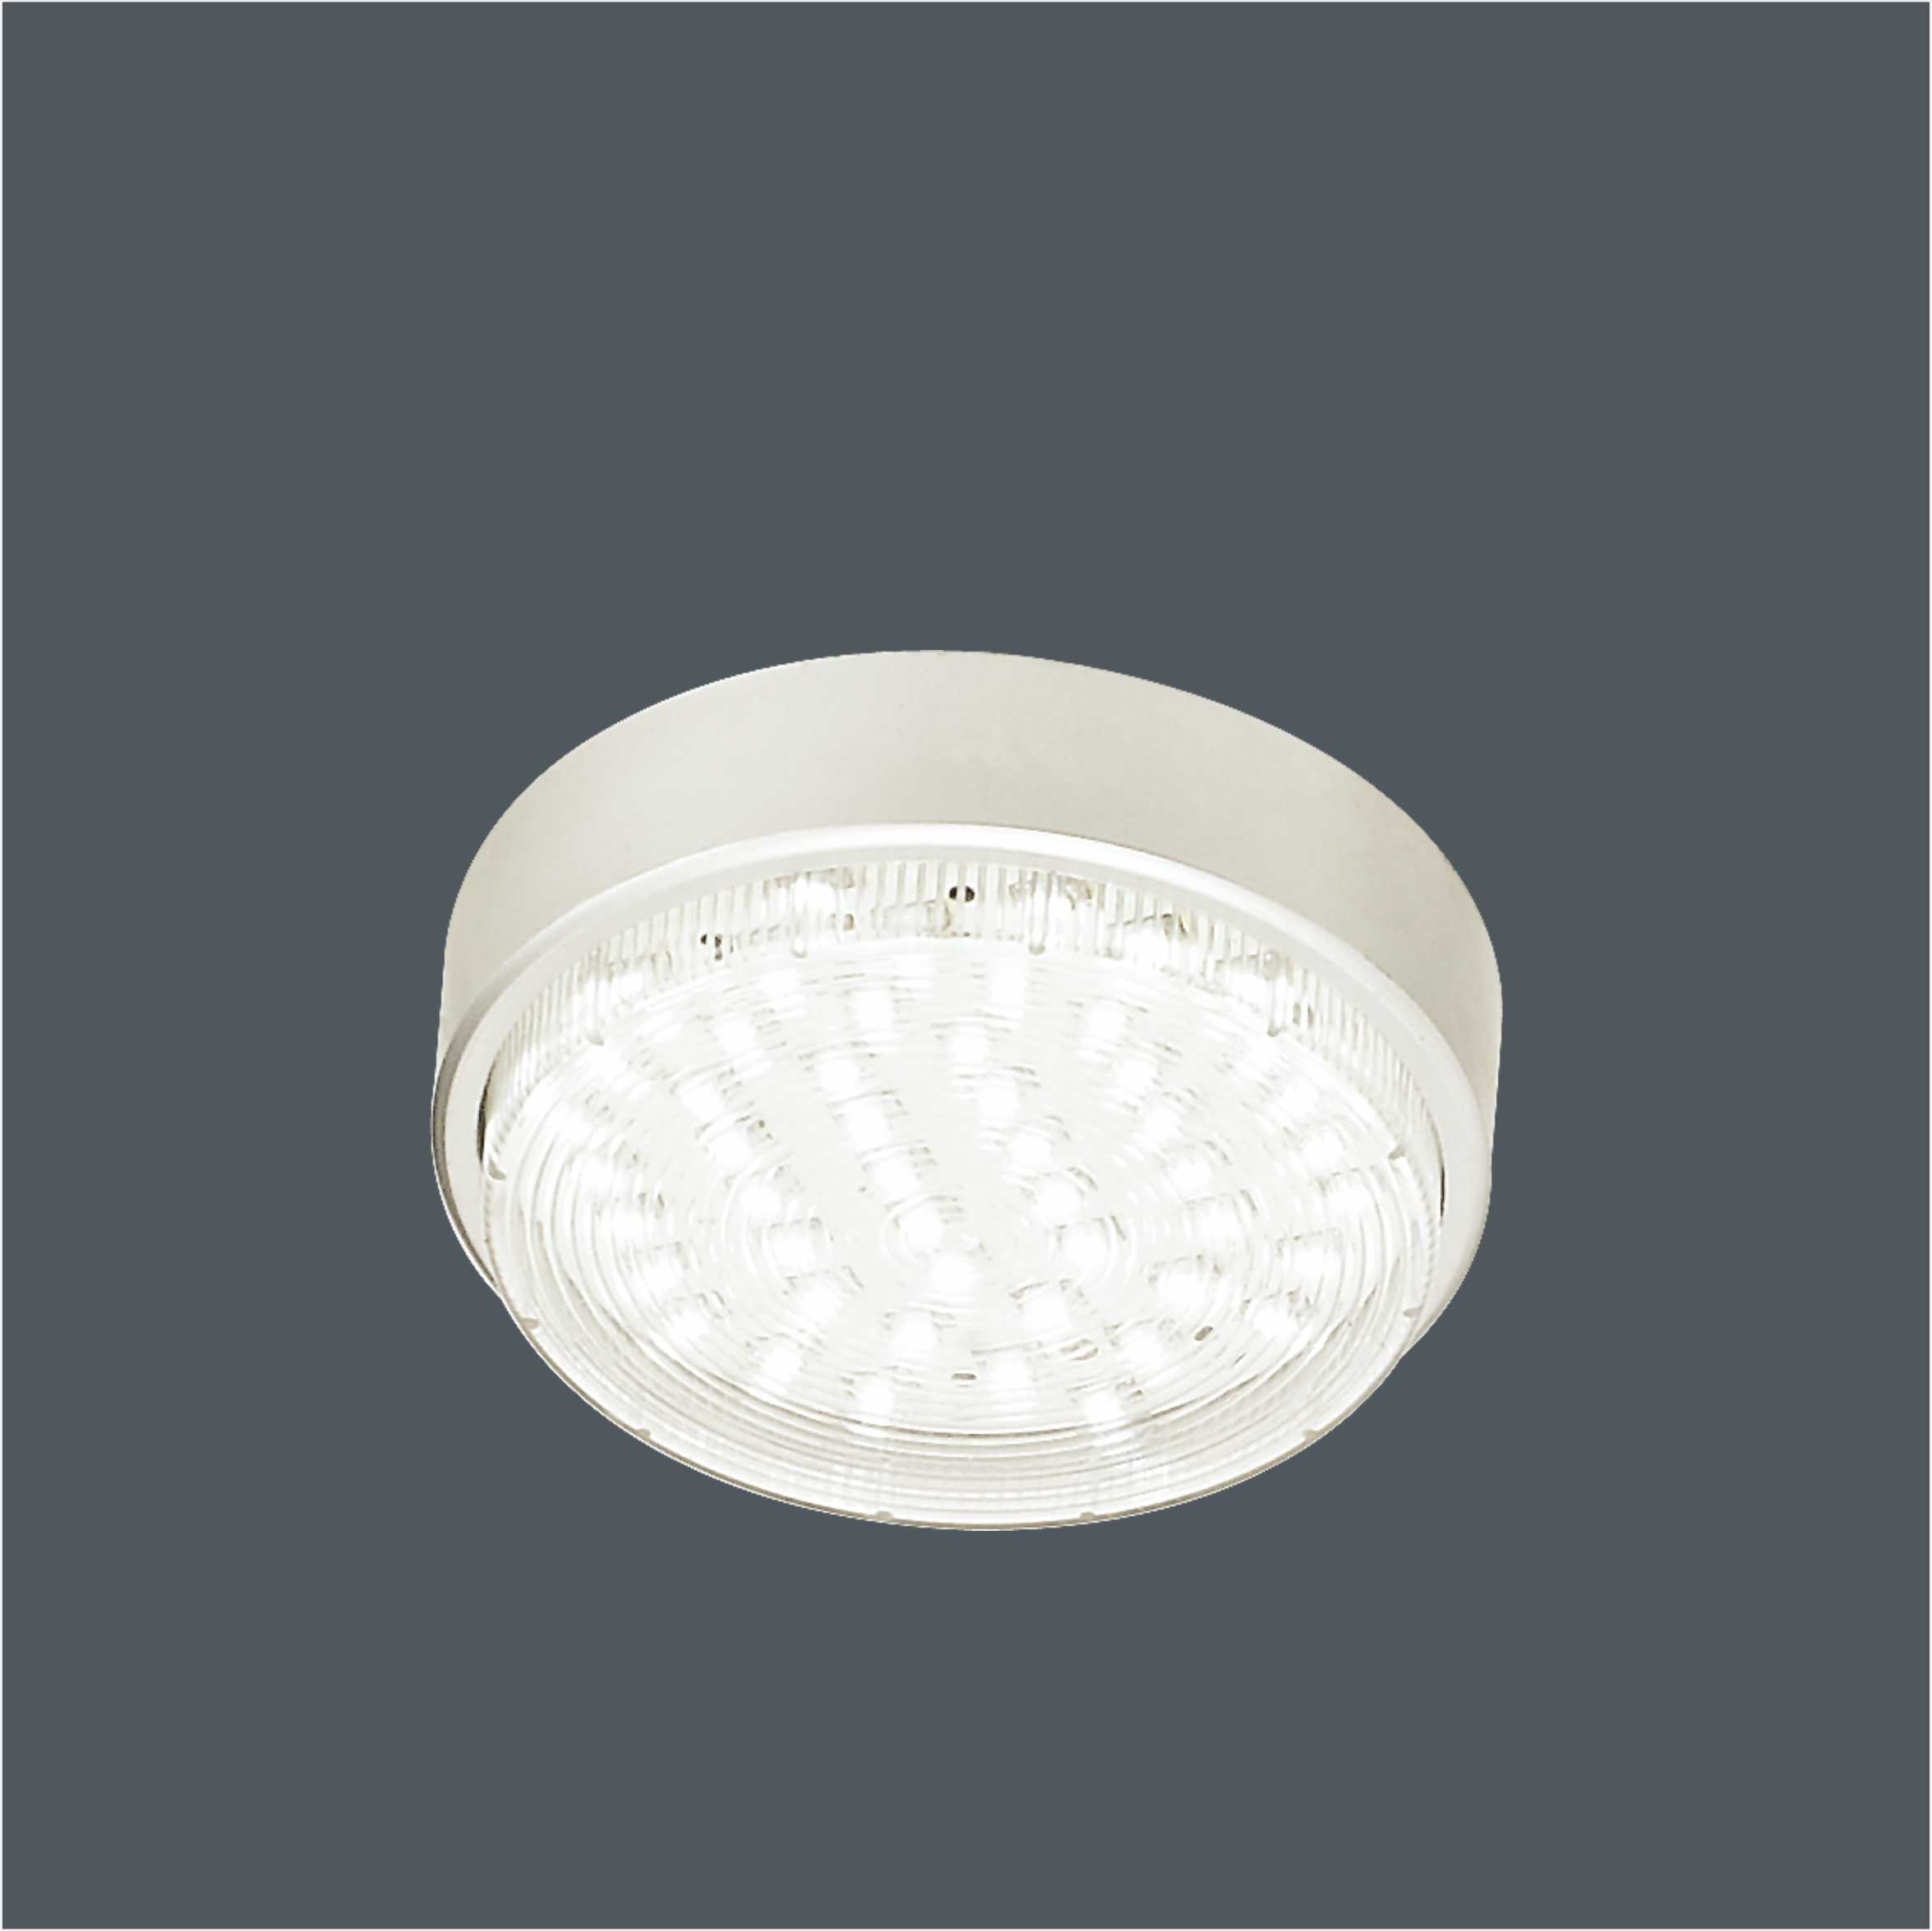 Surface Mounted GX53 Round Cabinet Down Light 6601